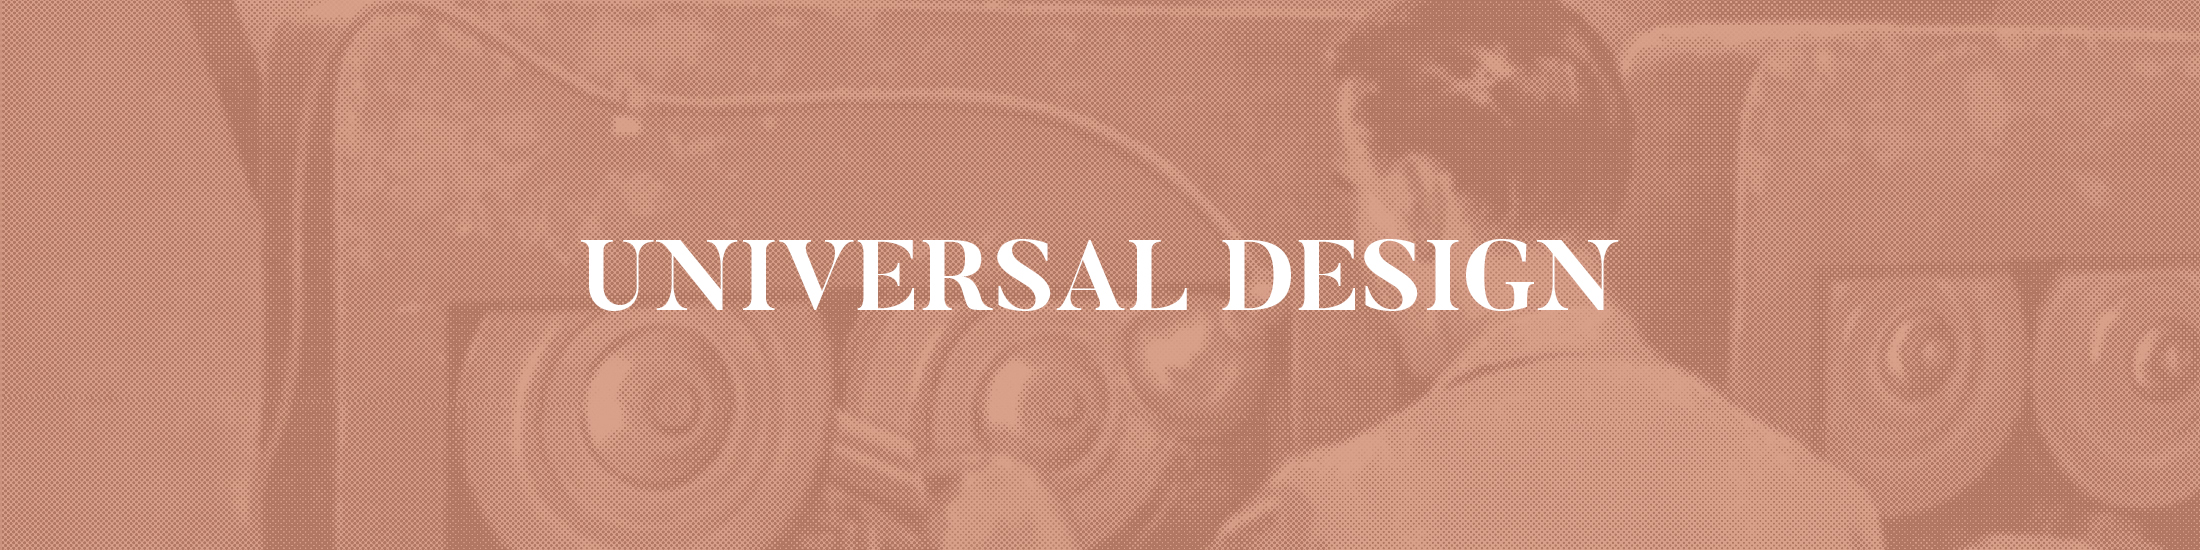 Universal Design digital exhibit